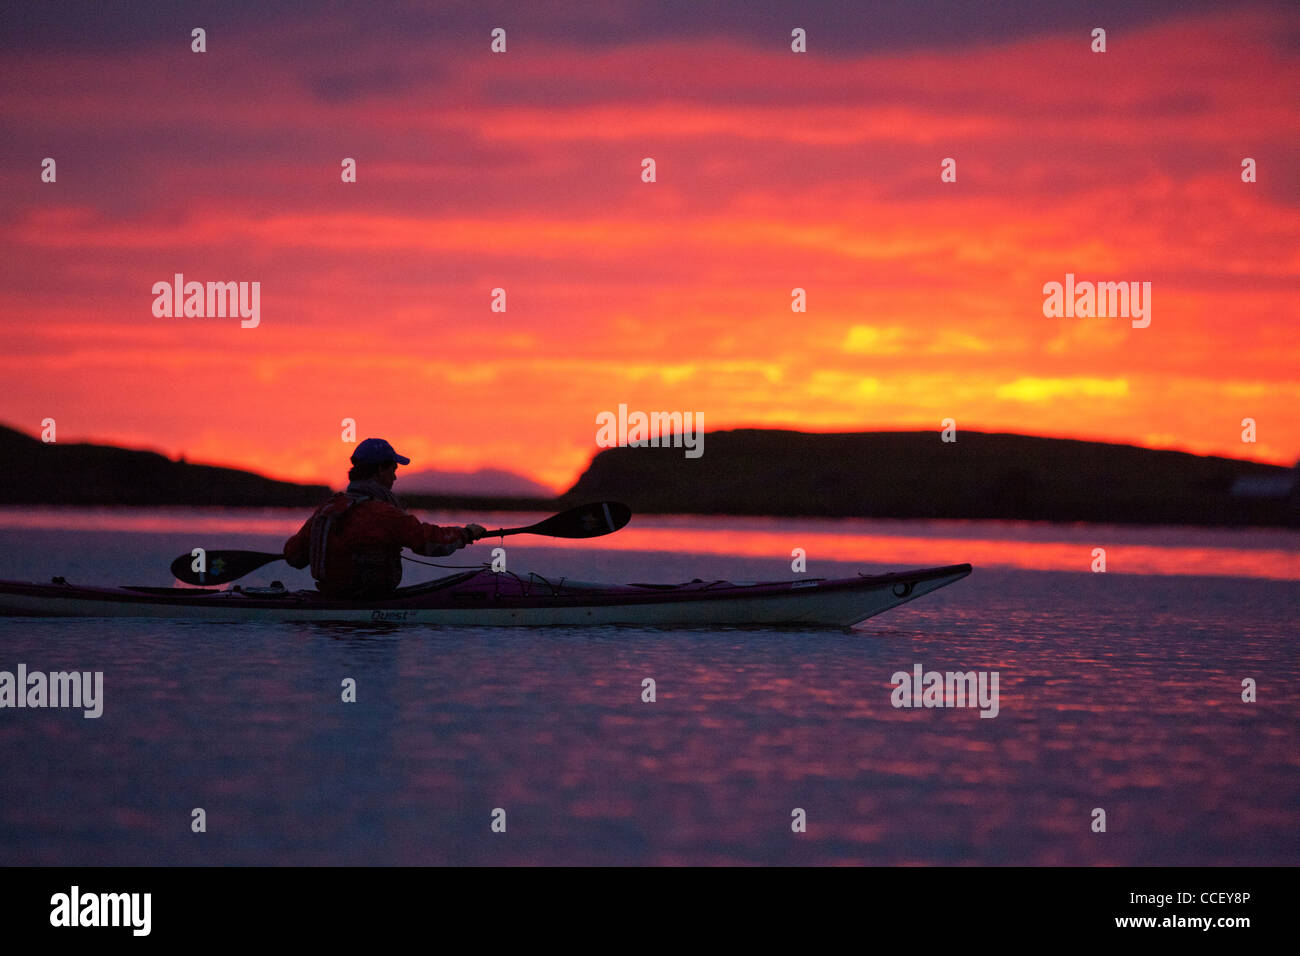 Sea kayaker at sunset in Clew Bay, County Mayo Ireland. - Stock Image